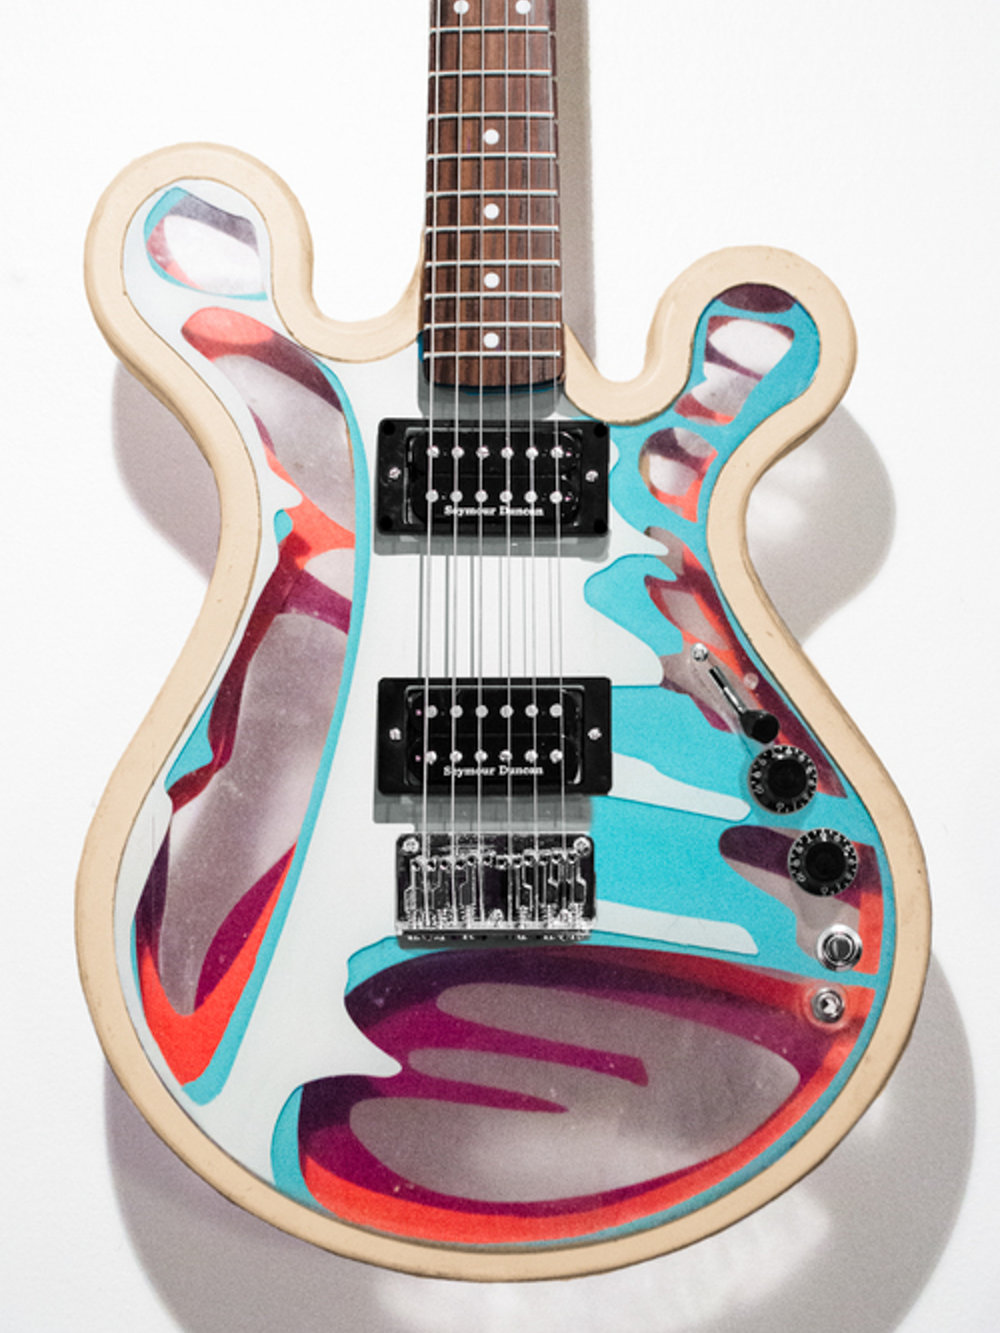 Gallo_Guitar_Vanilla_White_LED.jpg